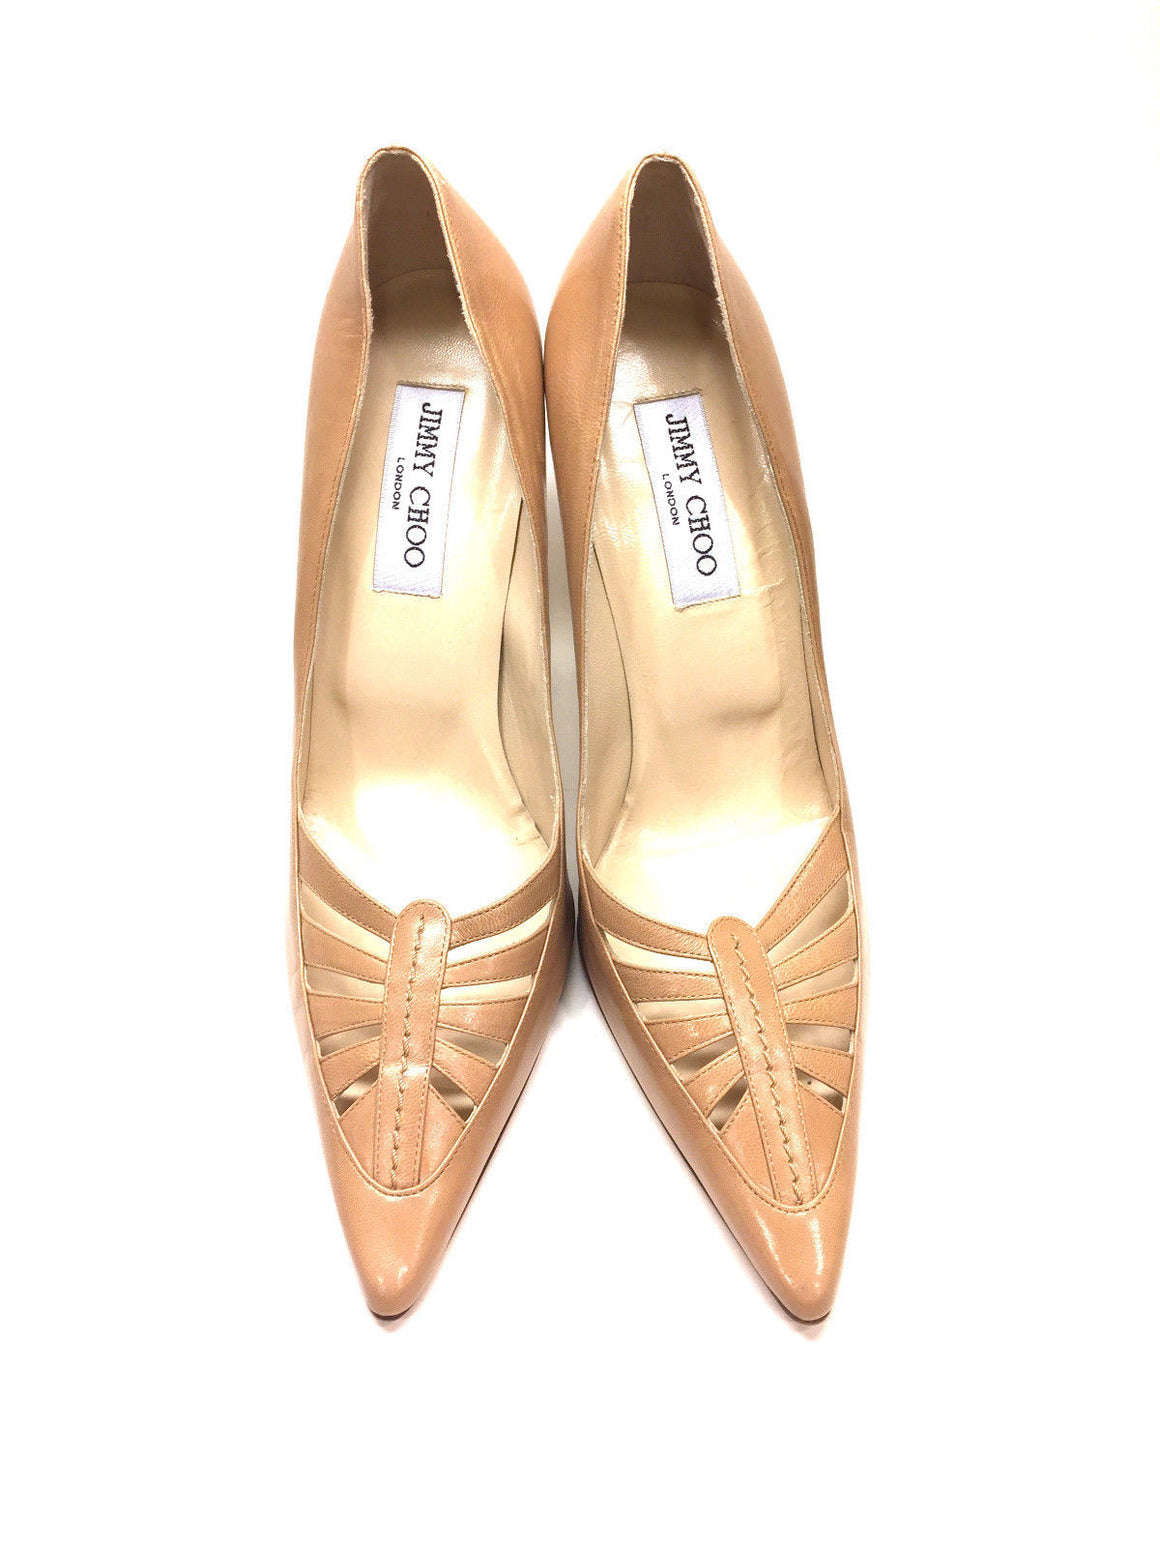 bisbiz.com JIMMY CHOO   Beige Leather Pointed-Toe Hi-Heel Pumps with Cut-Outs  Size: 40 / 10 - Bis Luxury Resale